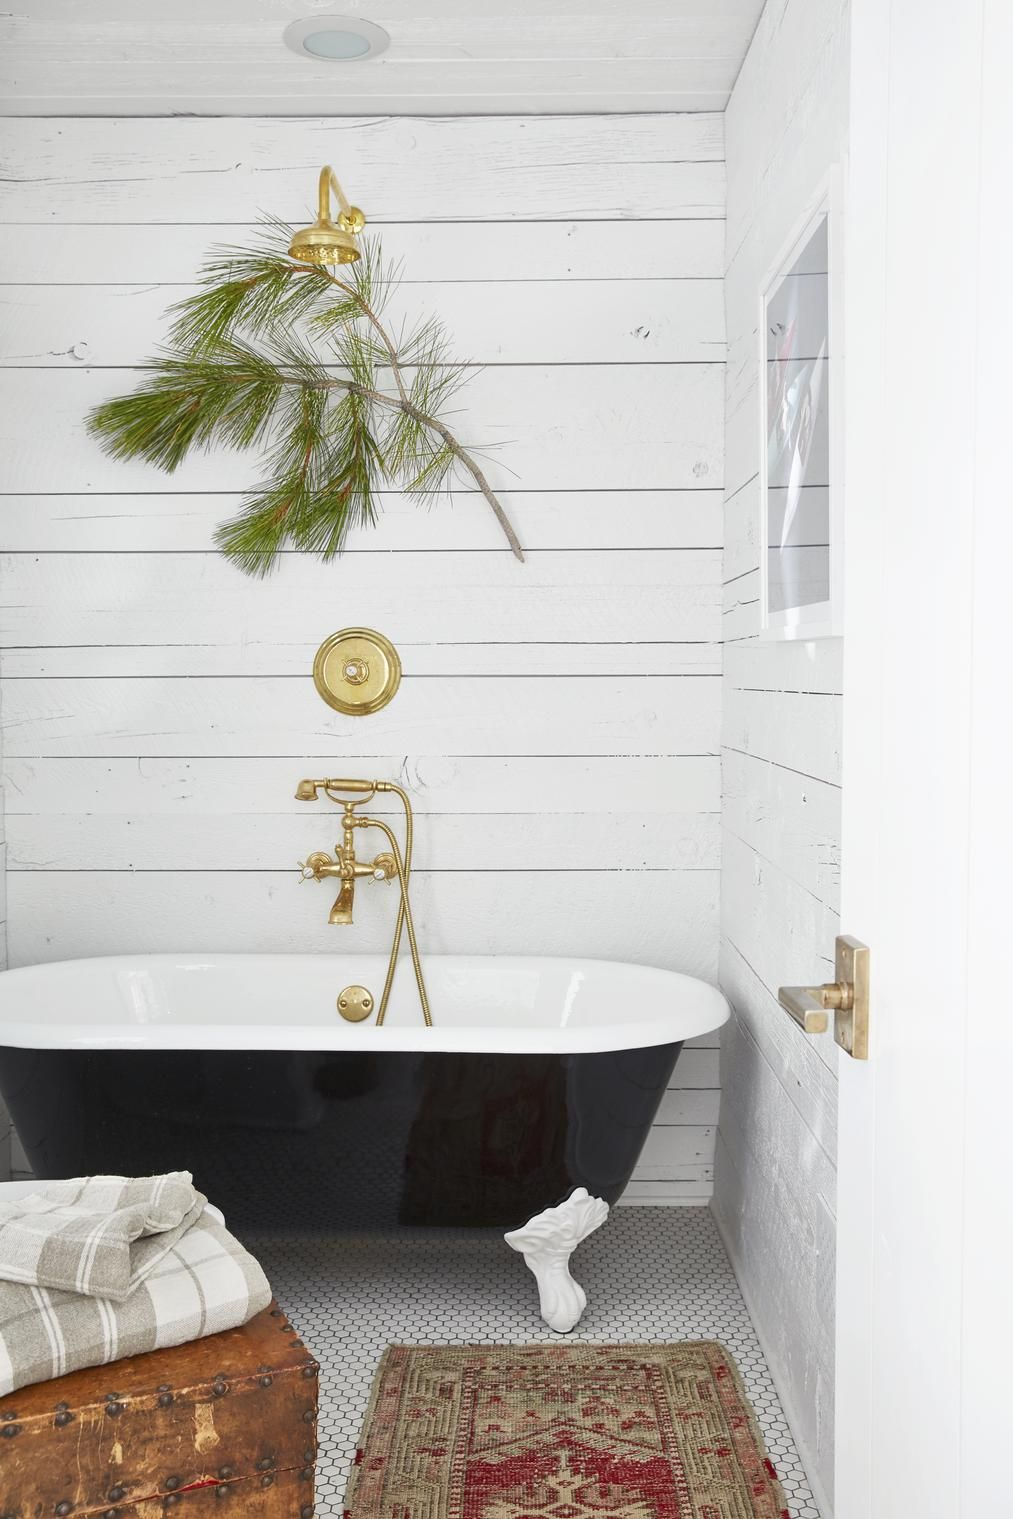 47 Rustic Bathroom Decor Ideas Rustic Modern Bathroom Designs,Largest Container Ship In The World 2020